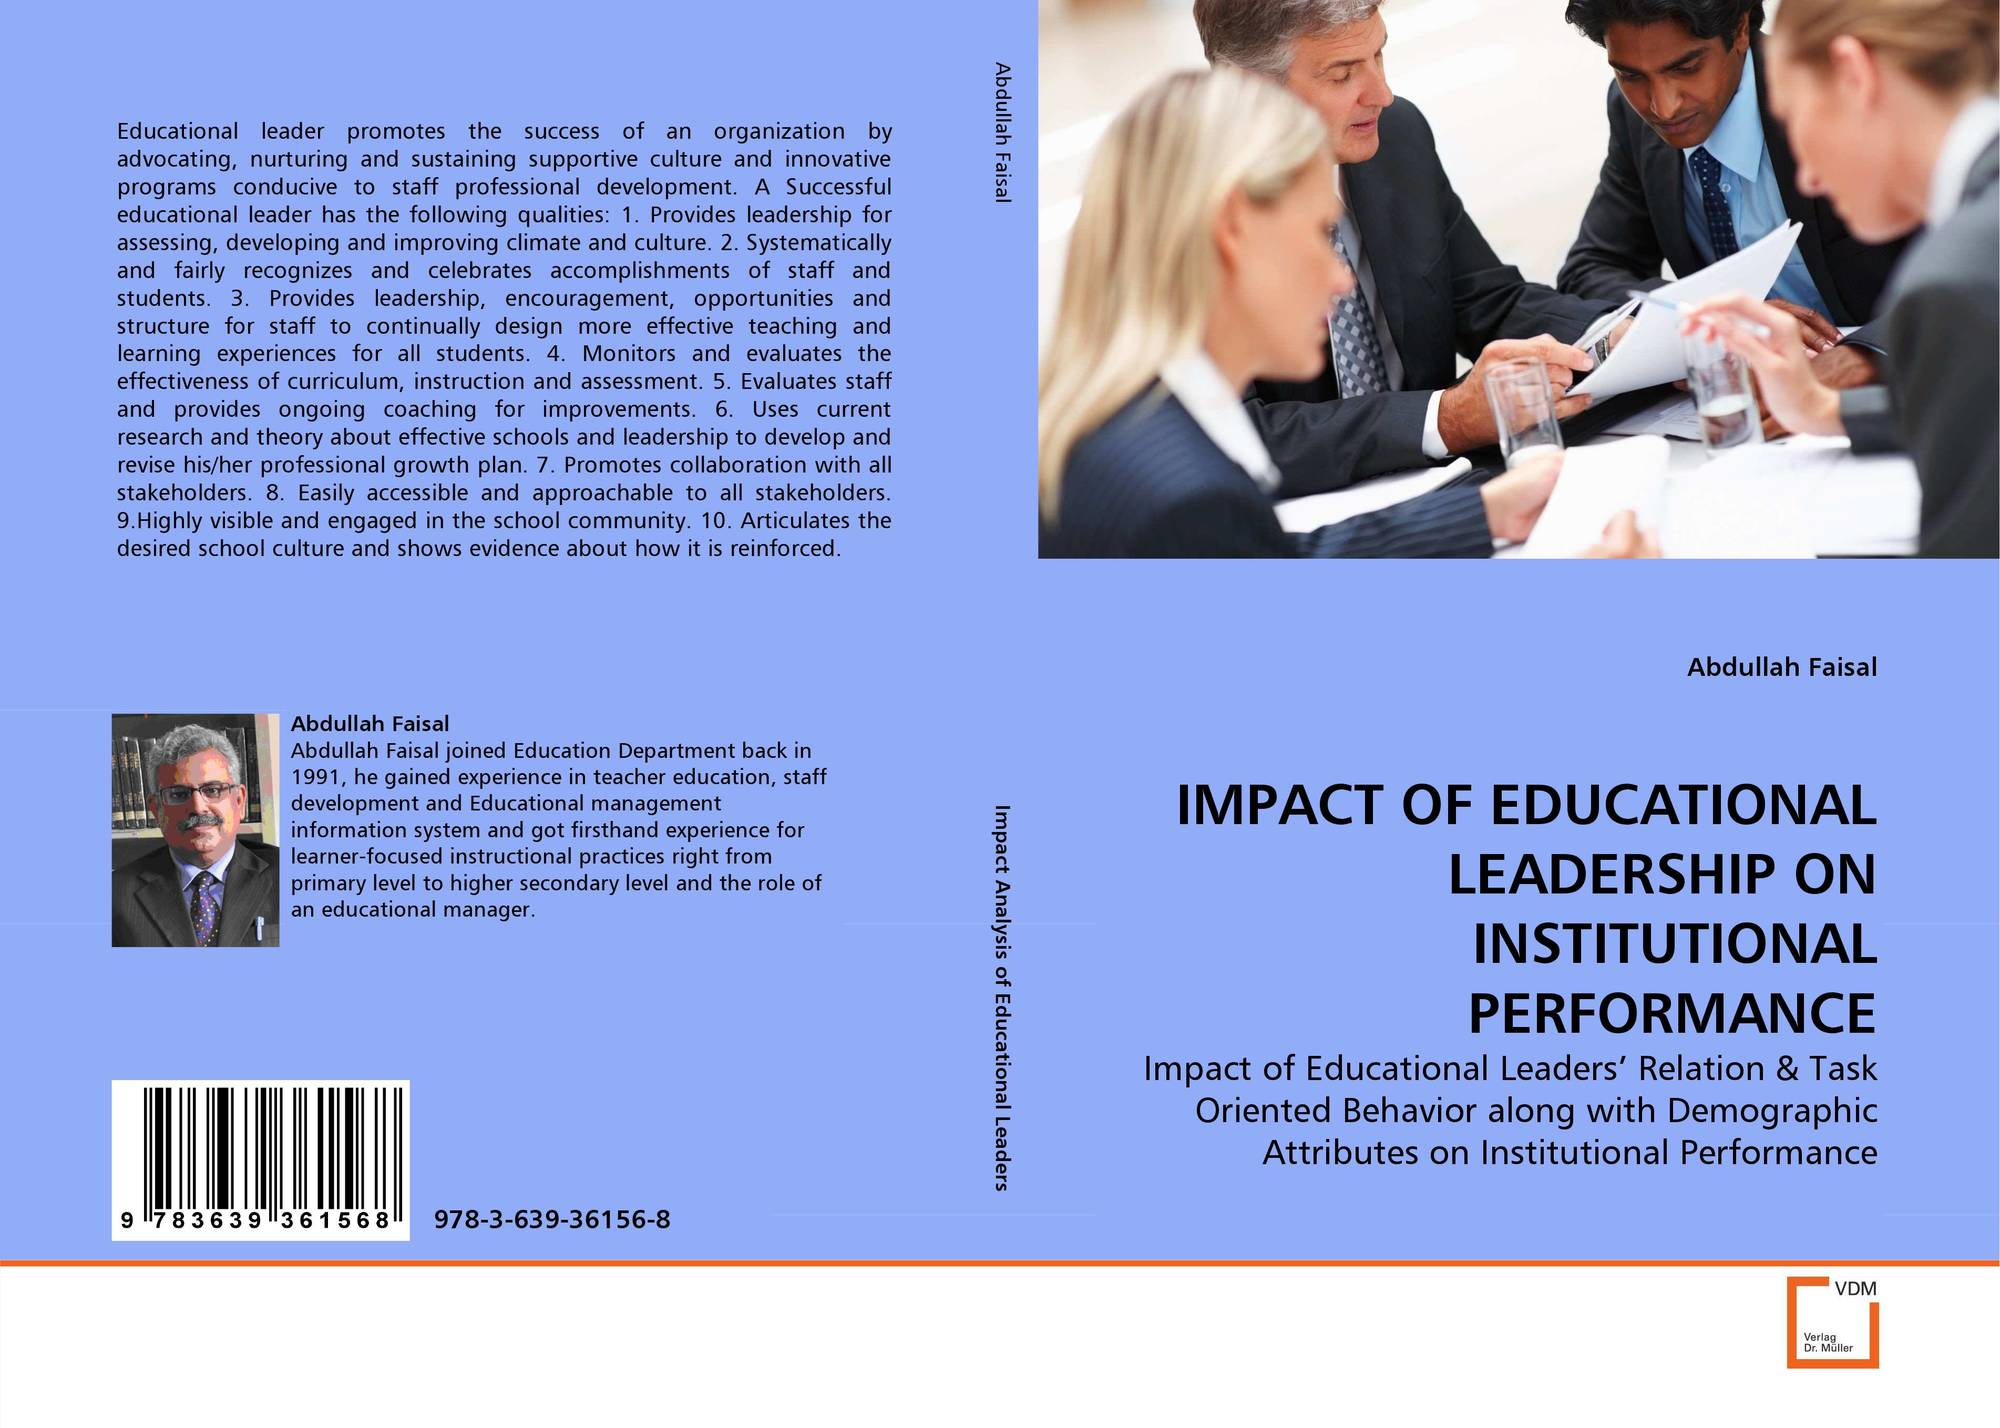 education leadership and its impact on education The biggest challenge in education today is its myopia and disregard for real-world problem-solving as concretized in our collective and sometimes willful lack of imagination in reforming education outside the tautological feedback loop of standardized testing.